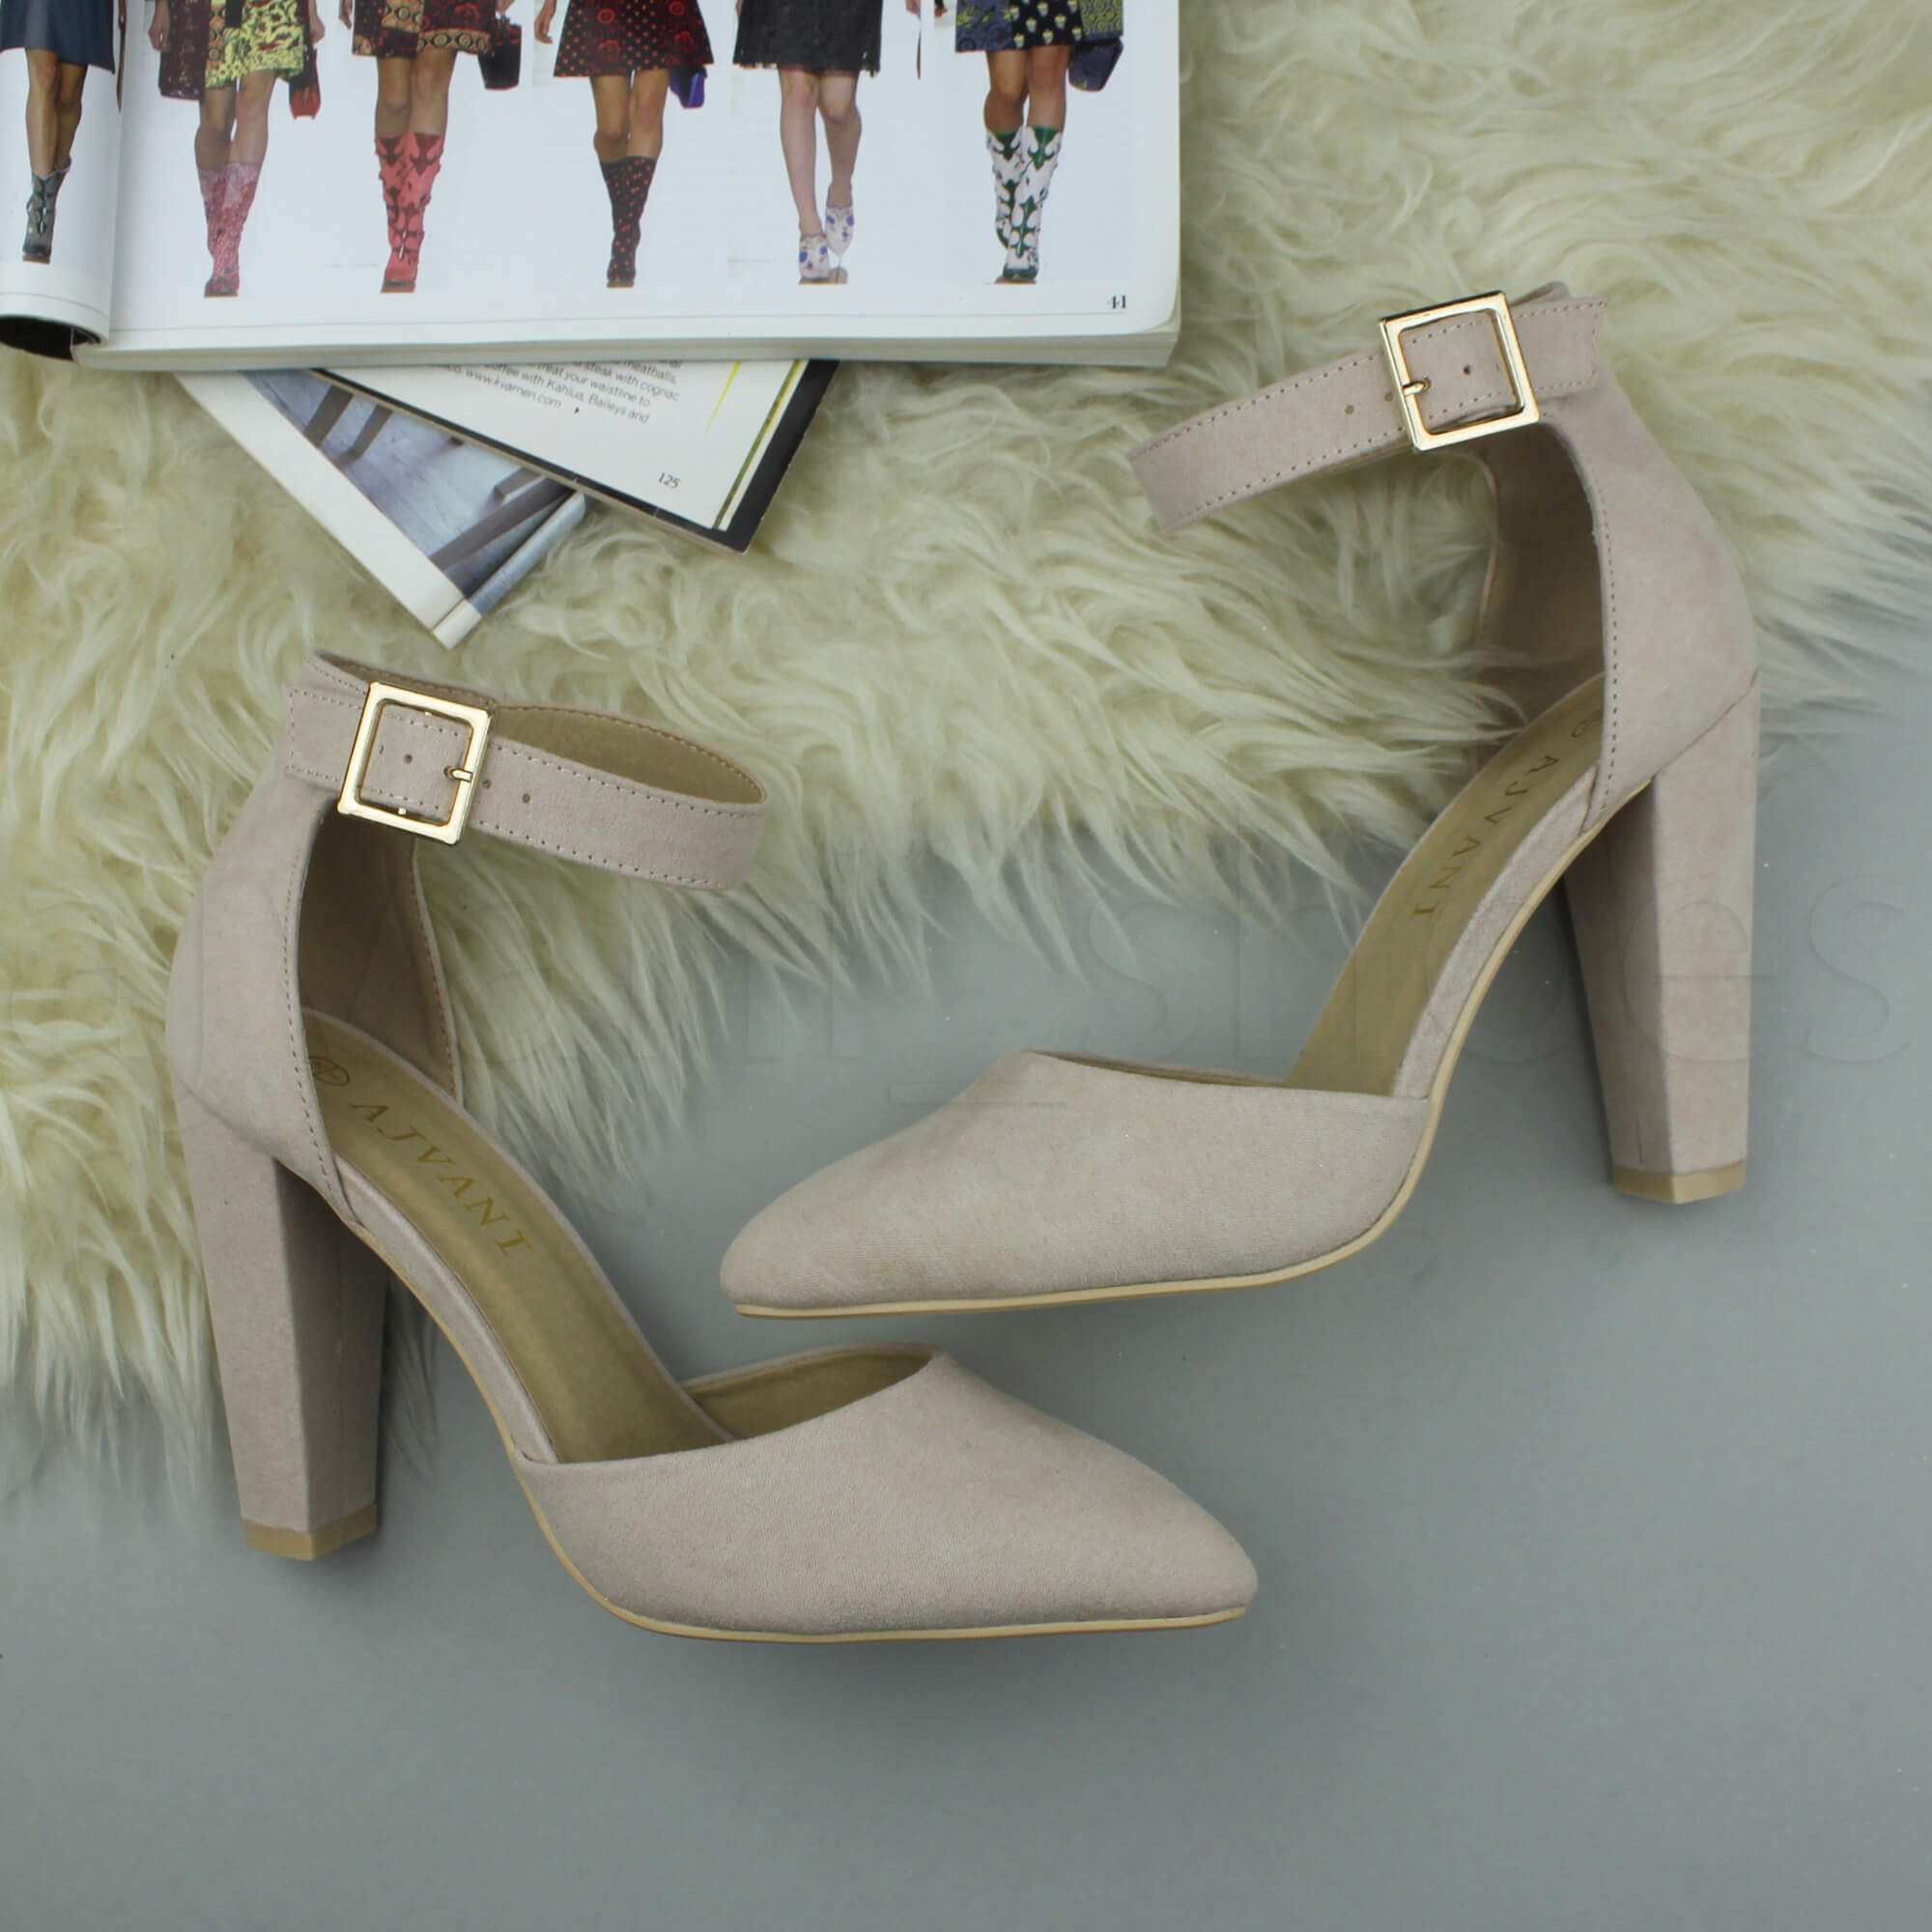 WOMENS-LADIES-HIGH-BLOCK-HEEL-ANKLE-STRAP-BUCKLE-POINTED-COURT-SHOES-SIZE thumbnail 5